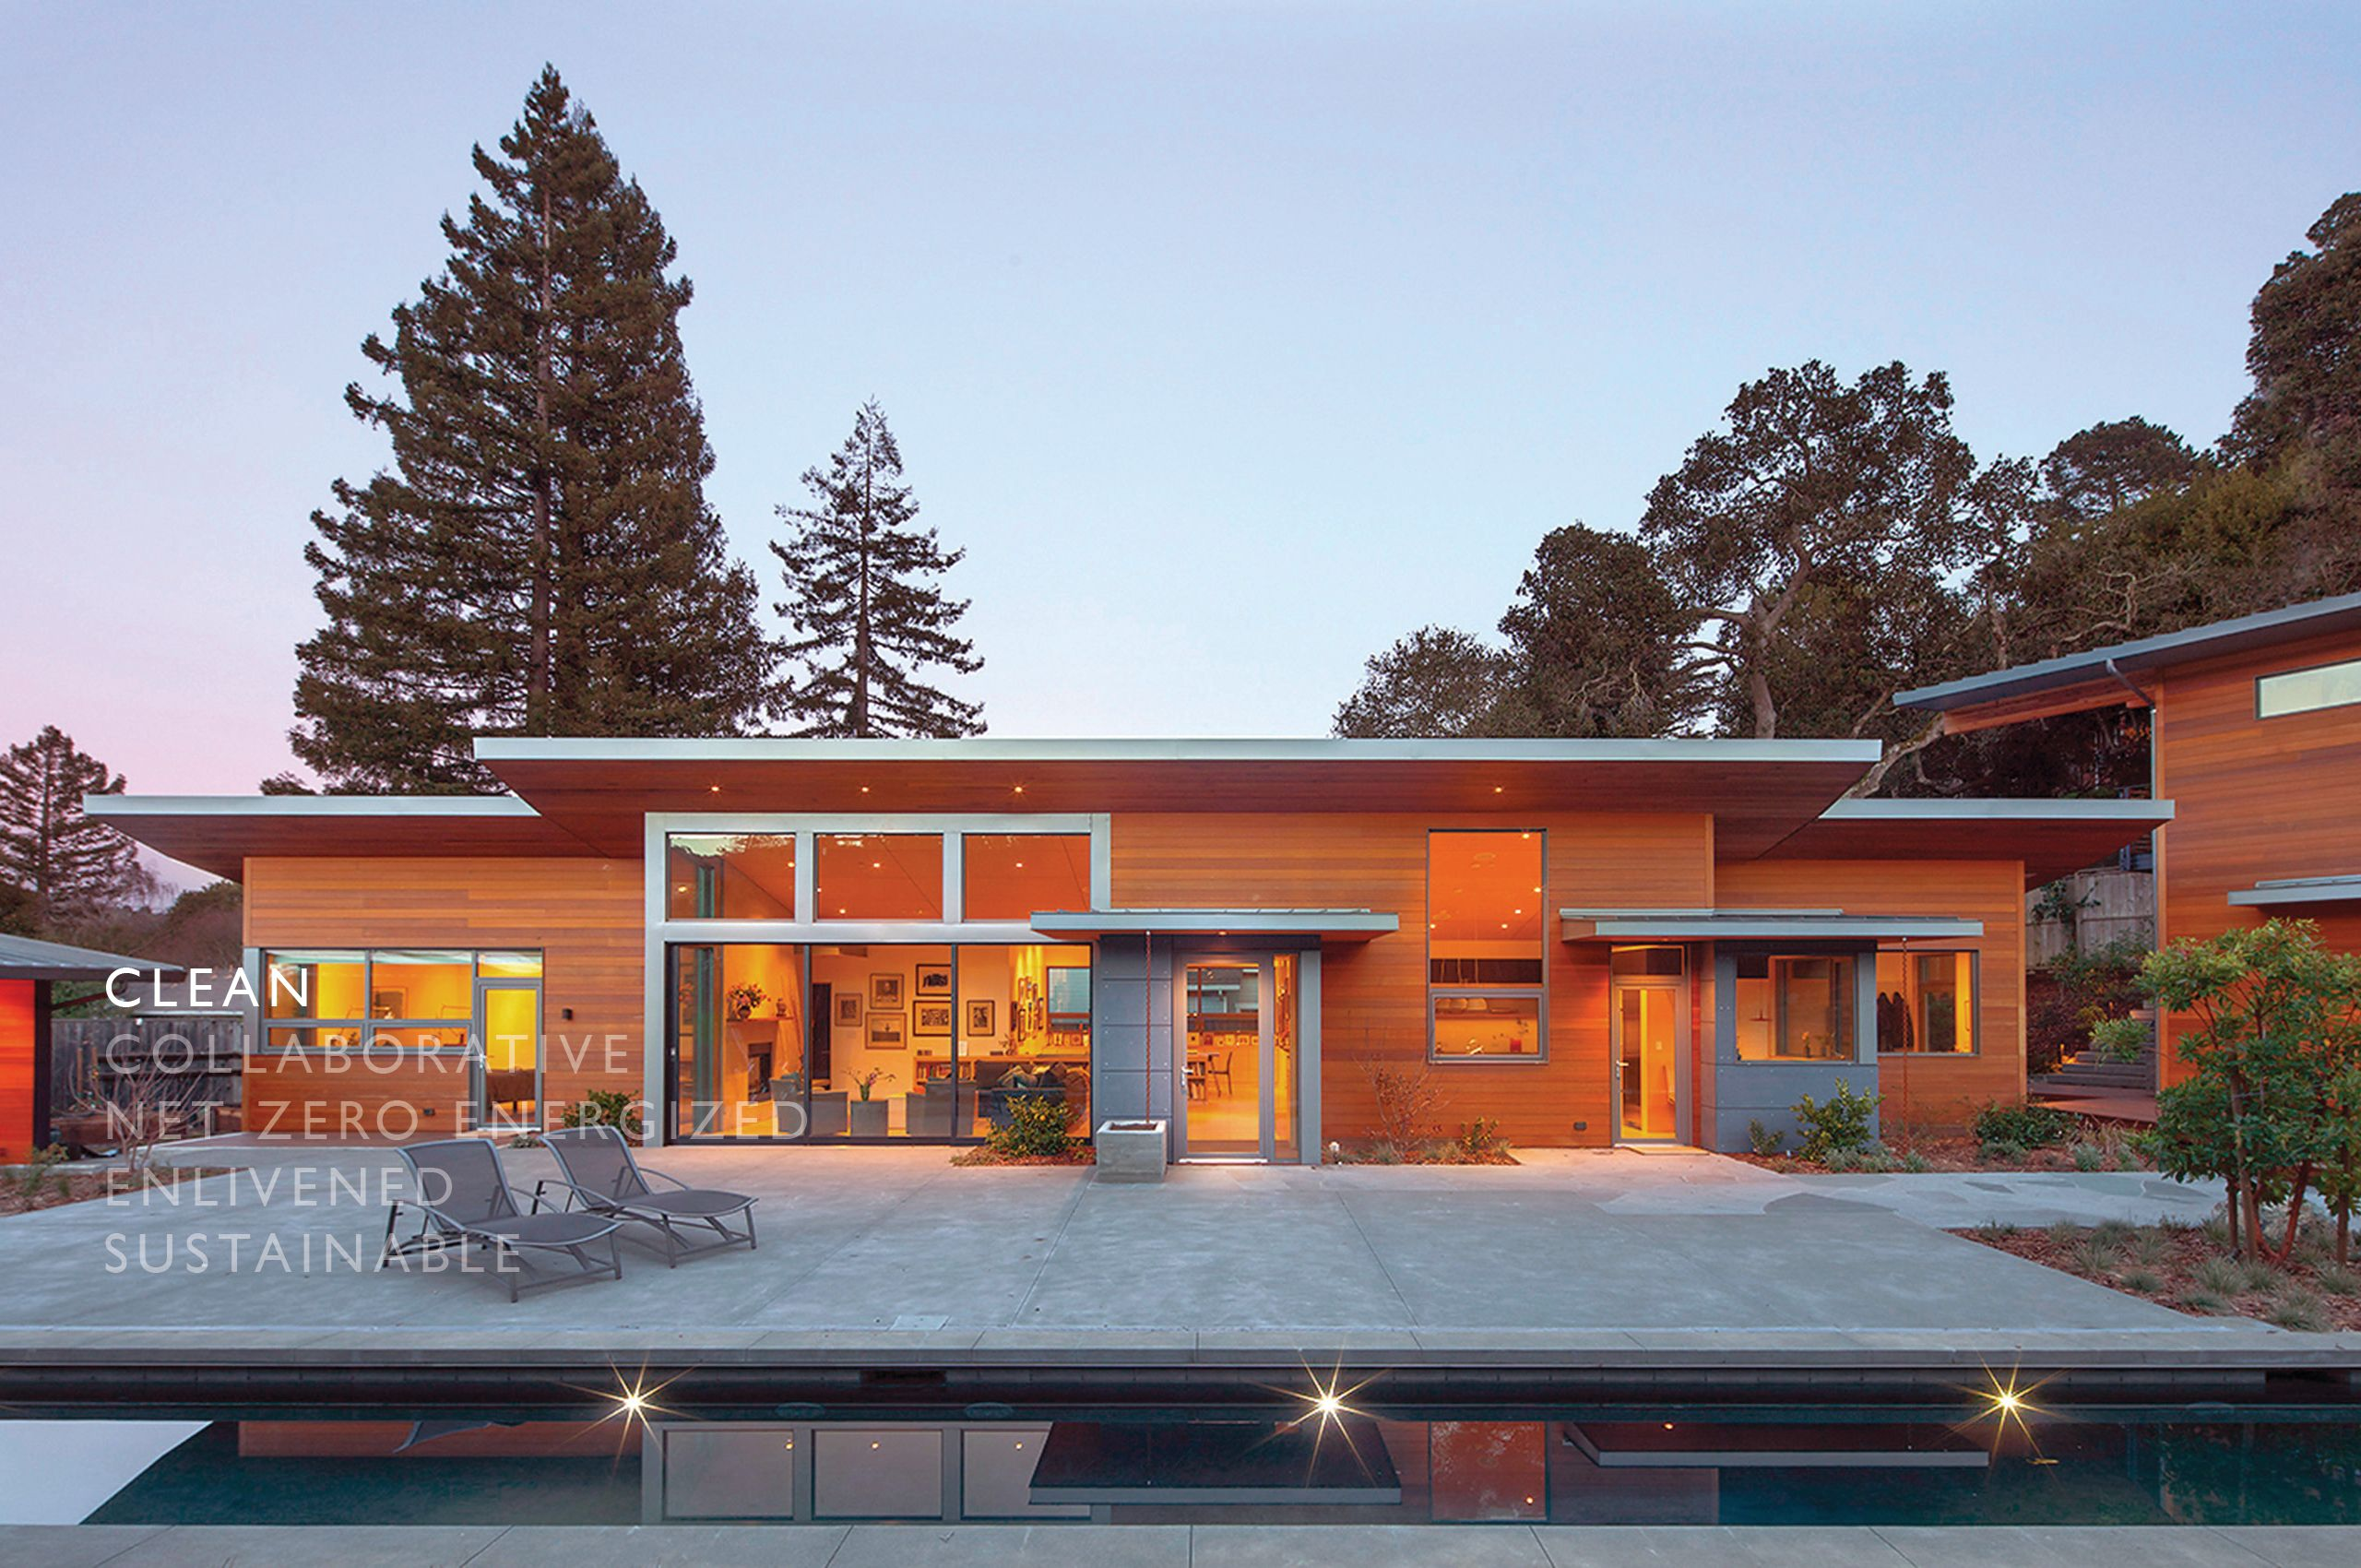 Sustainable Architecture firm in San Francisco, California